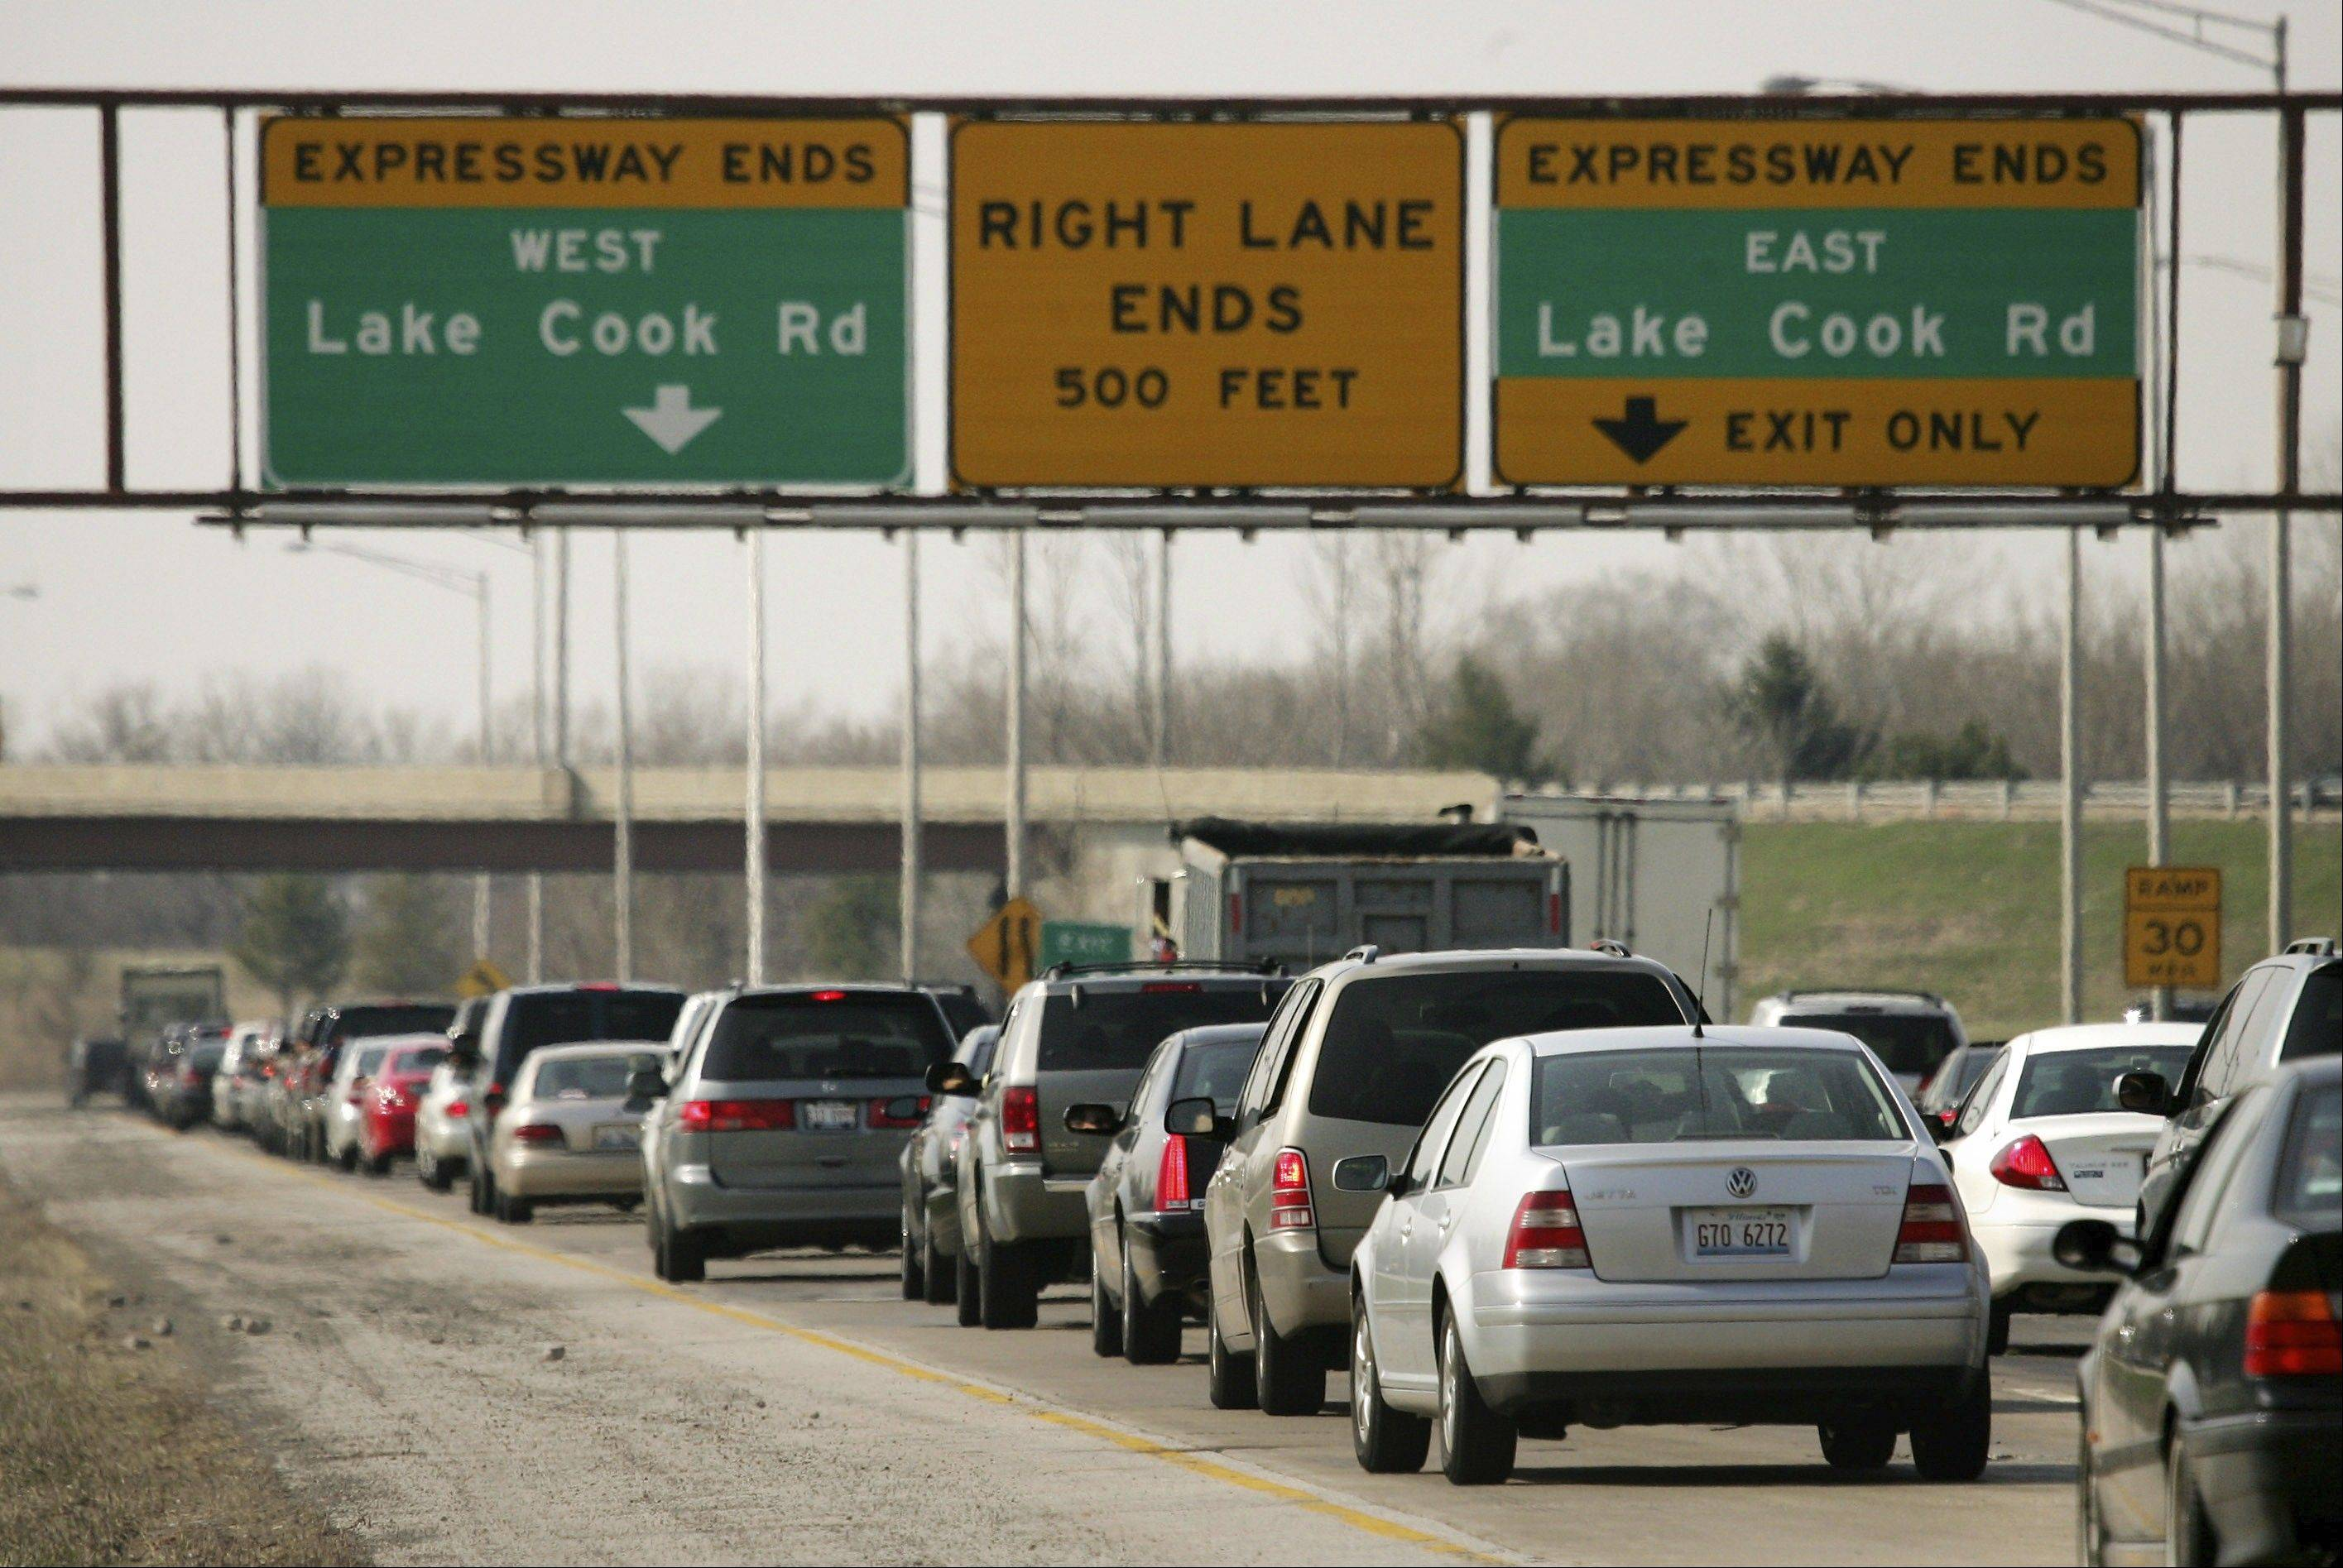 If Route 53 is extended into Lake County, who will pay for it?